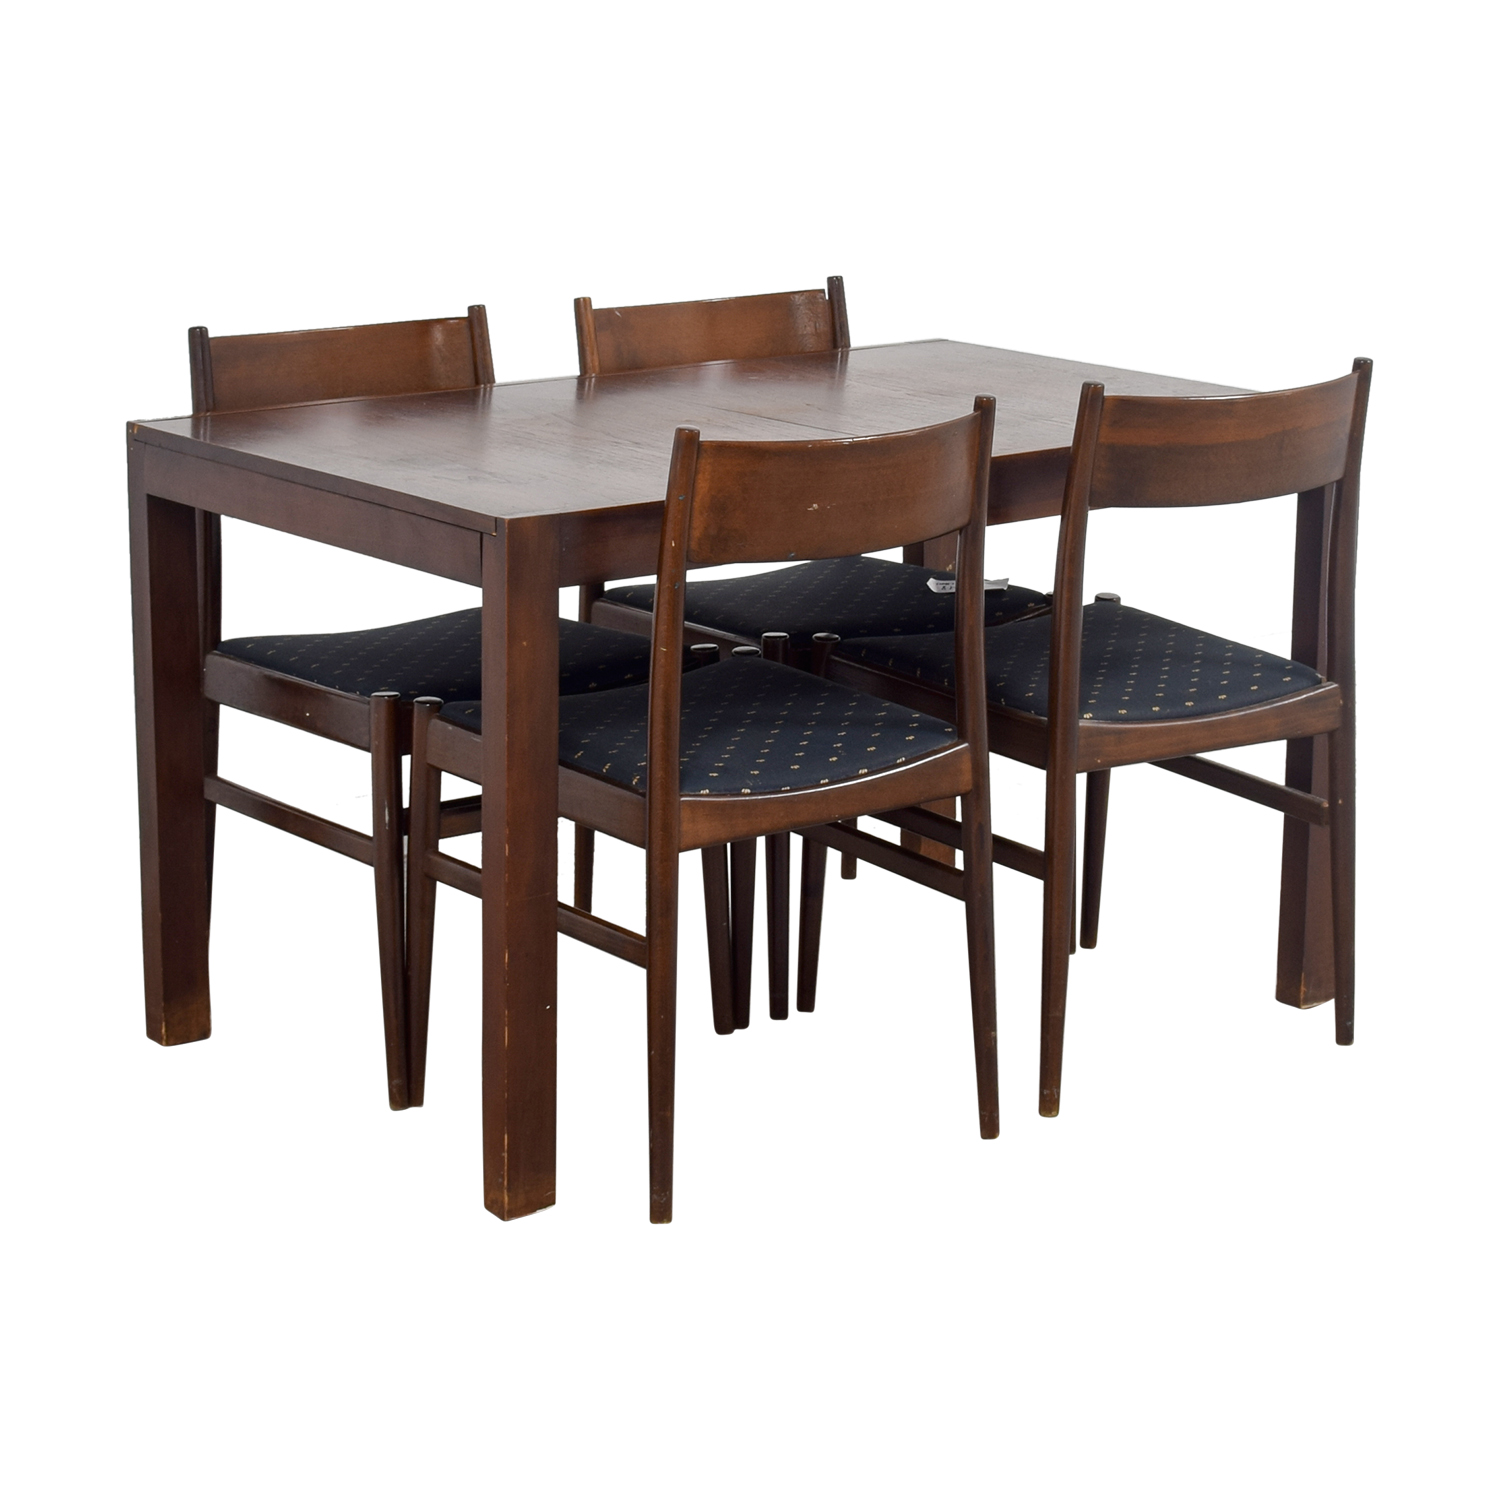 Extendable Wood Dining Set with Blue Seat Cushions / Dining Sets